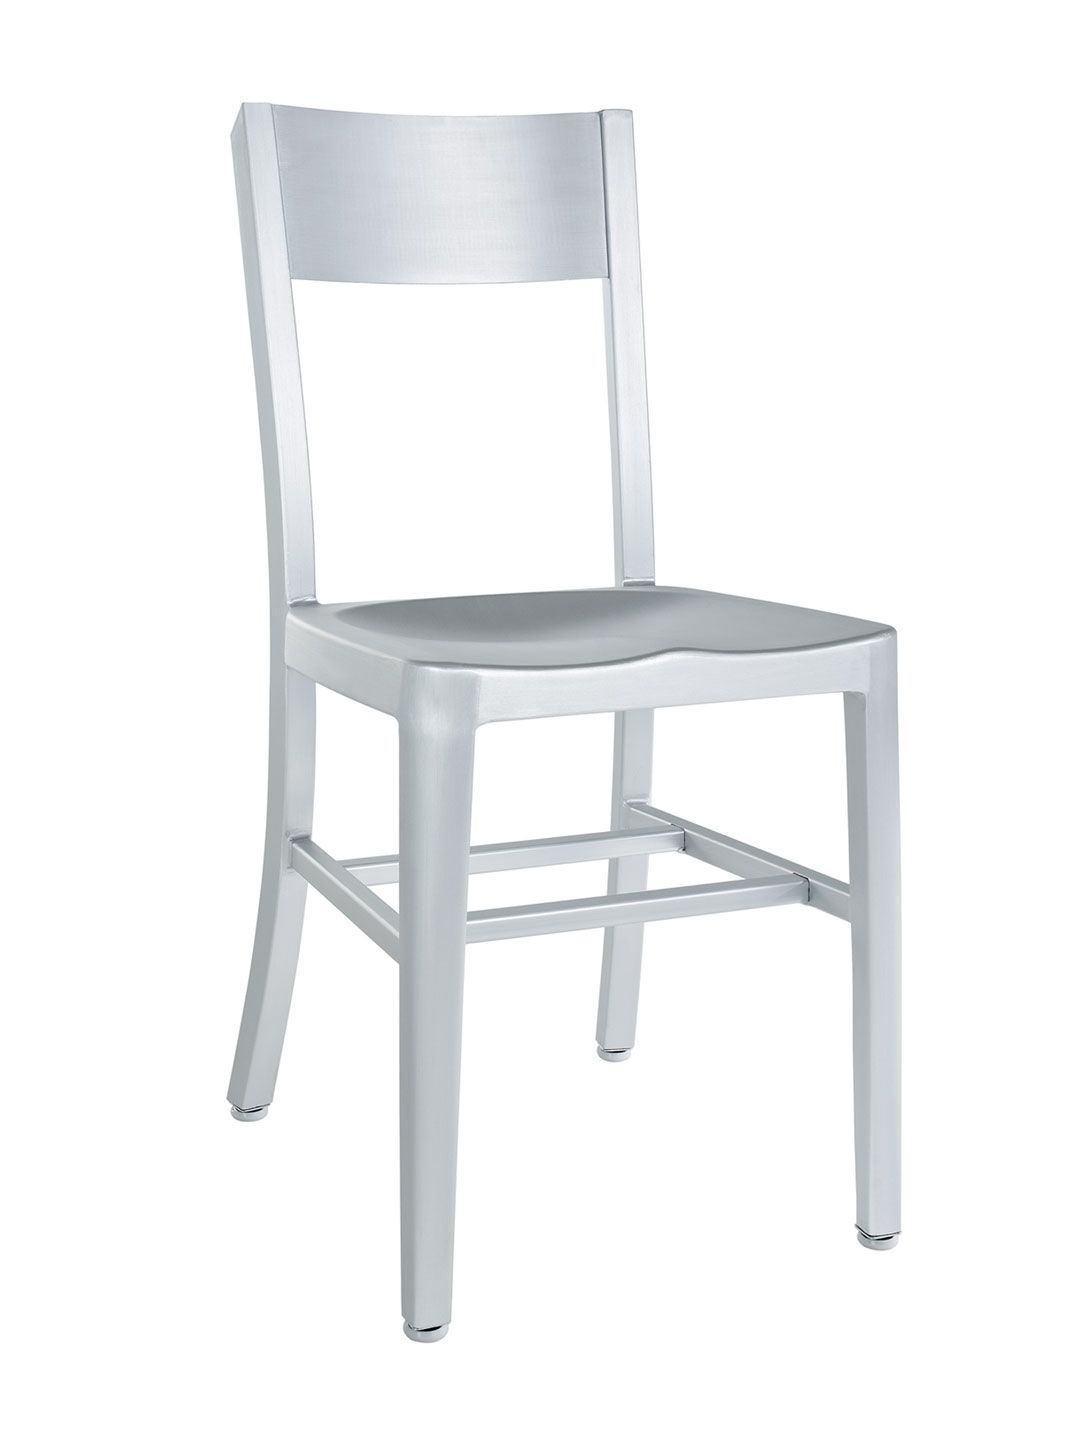 milan dining chairs (set of ) by pearl river modern ny at gilt  - milan dining chairs (set of ) by pearl river modern ny at gilt